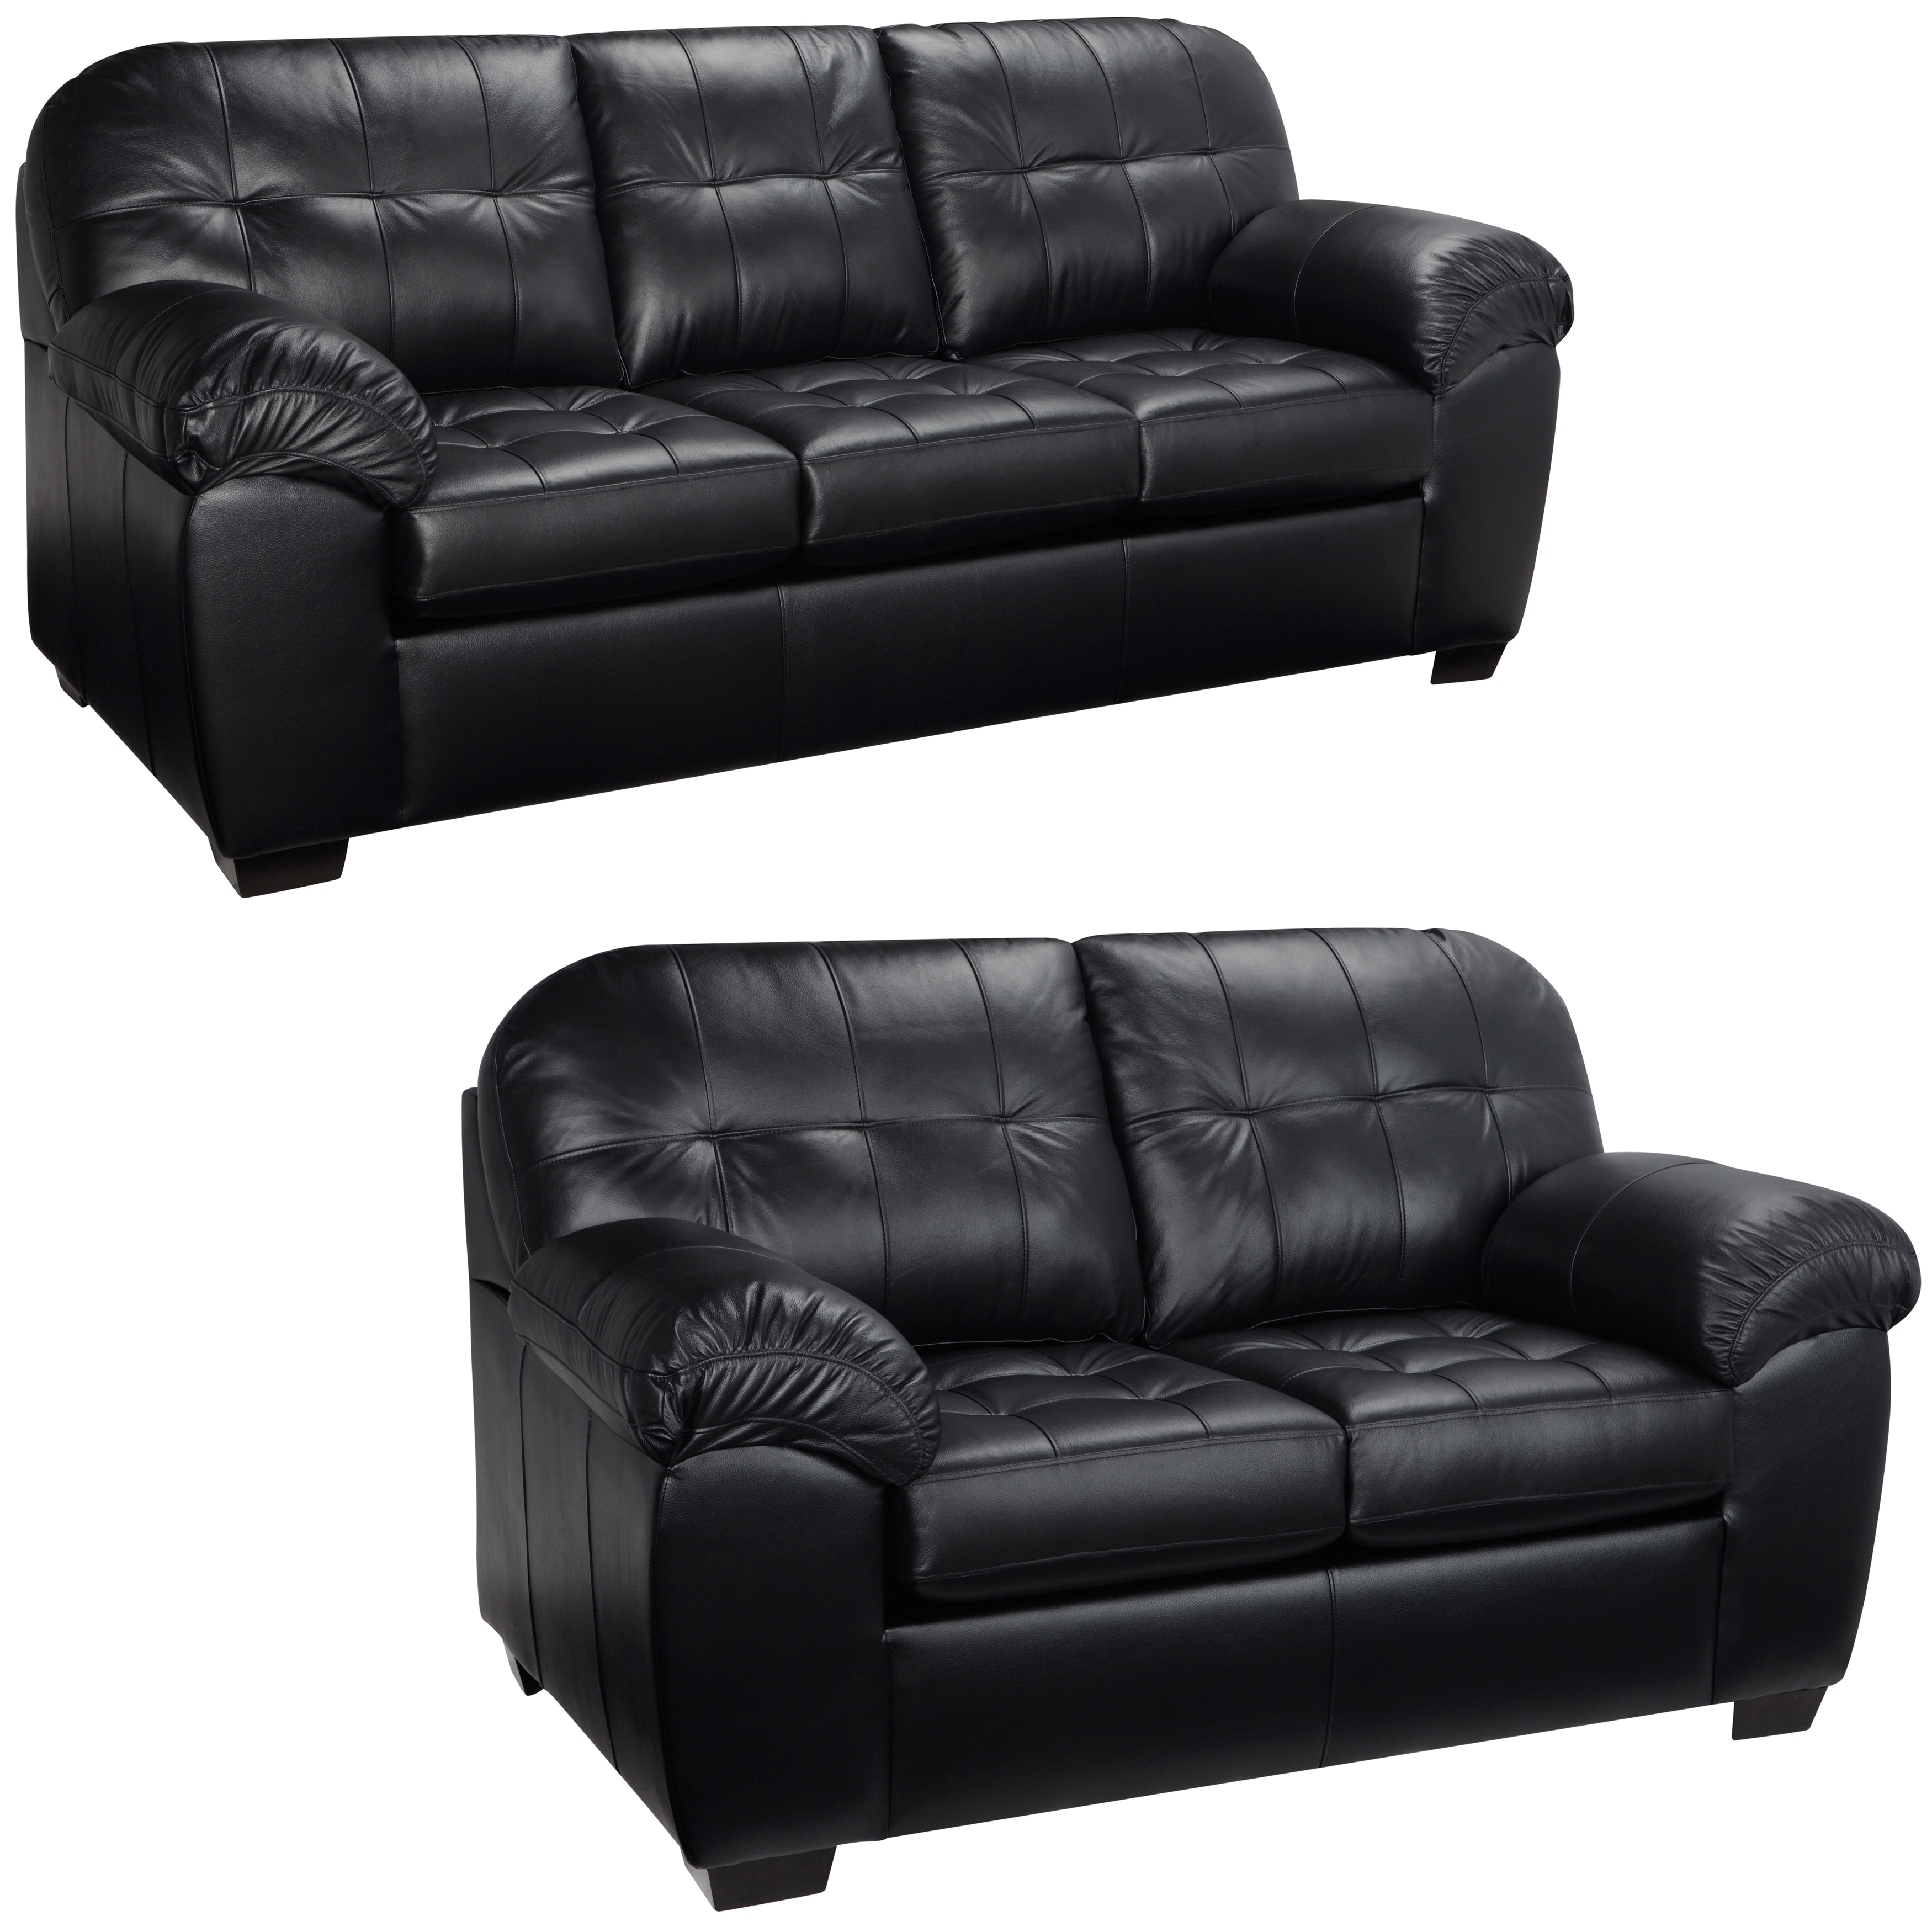 Black Stage Sofa And Loveseat   S